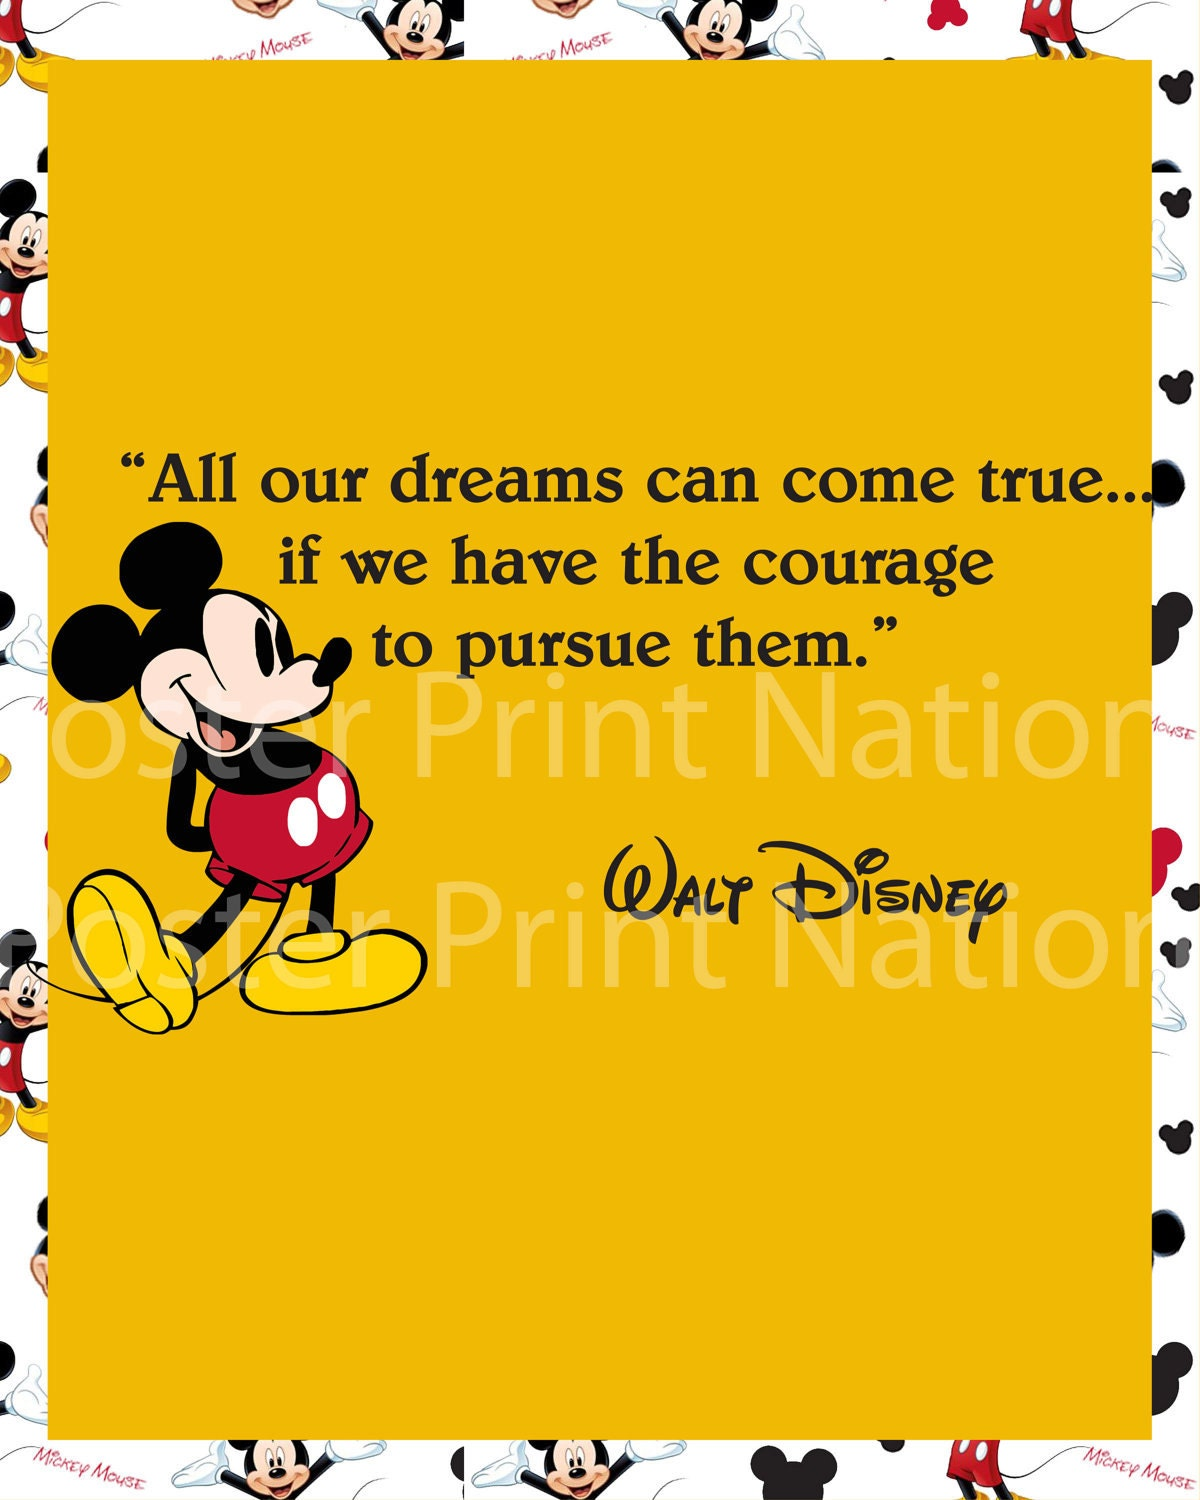 Disney Quote About Friendship Custom Disney Quote On Friendship Disney Princess Quotes About